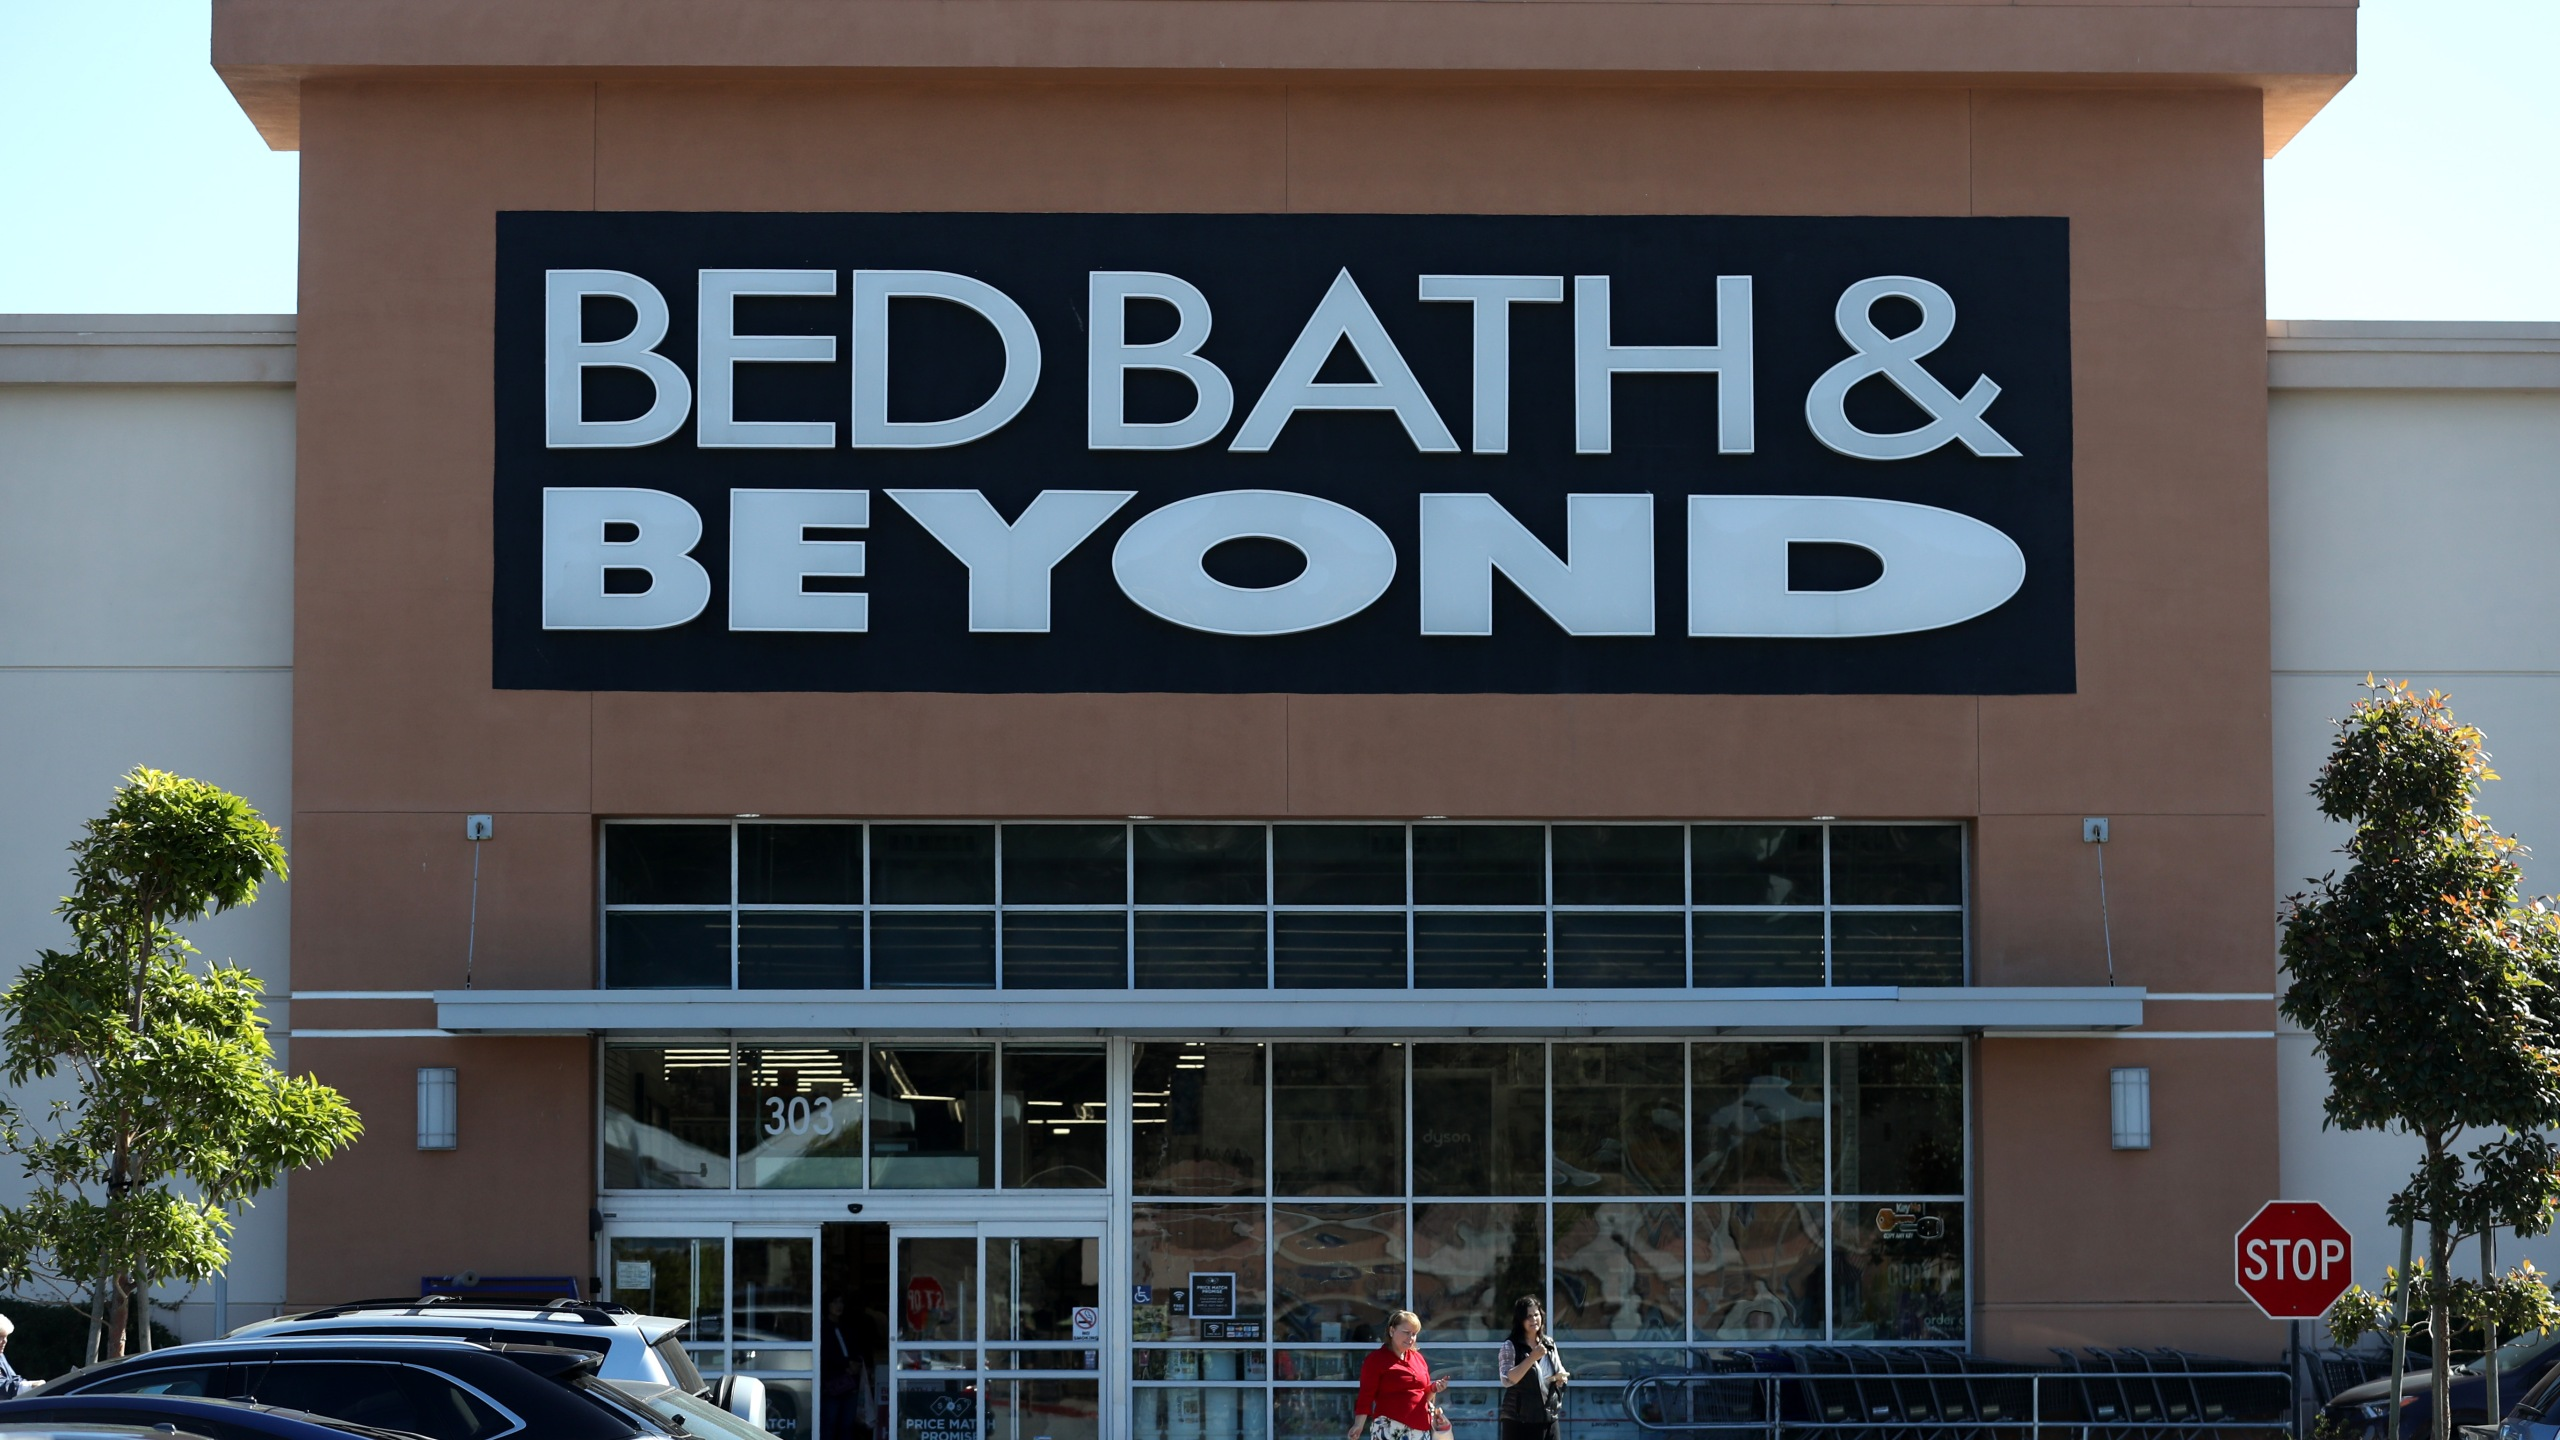 A Bed Bath & Beyond store is seen on Oct. 3, 2019 in Daly City. (Credit: Justin Sullivan/Getty Images)